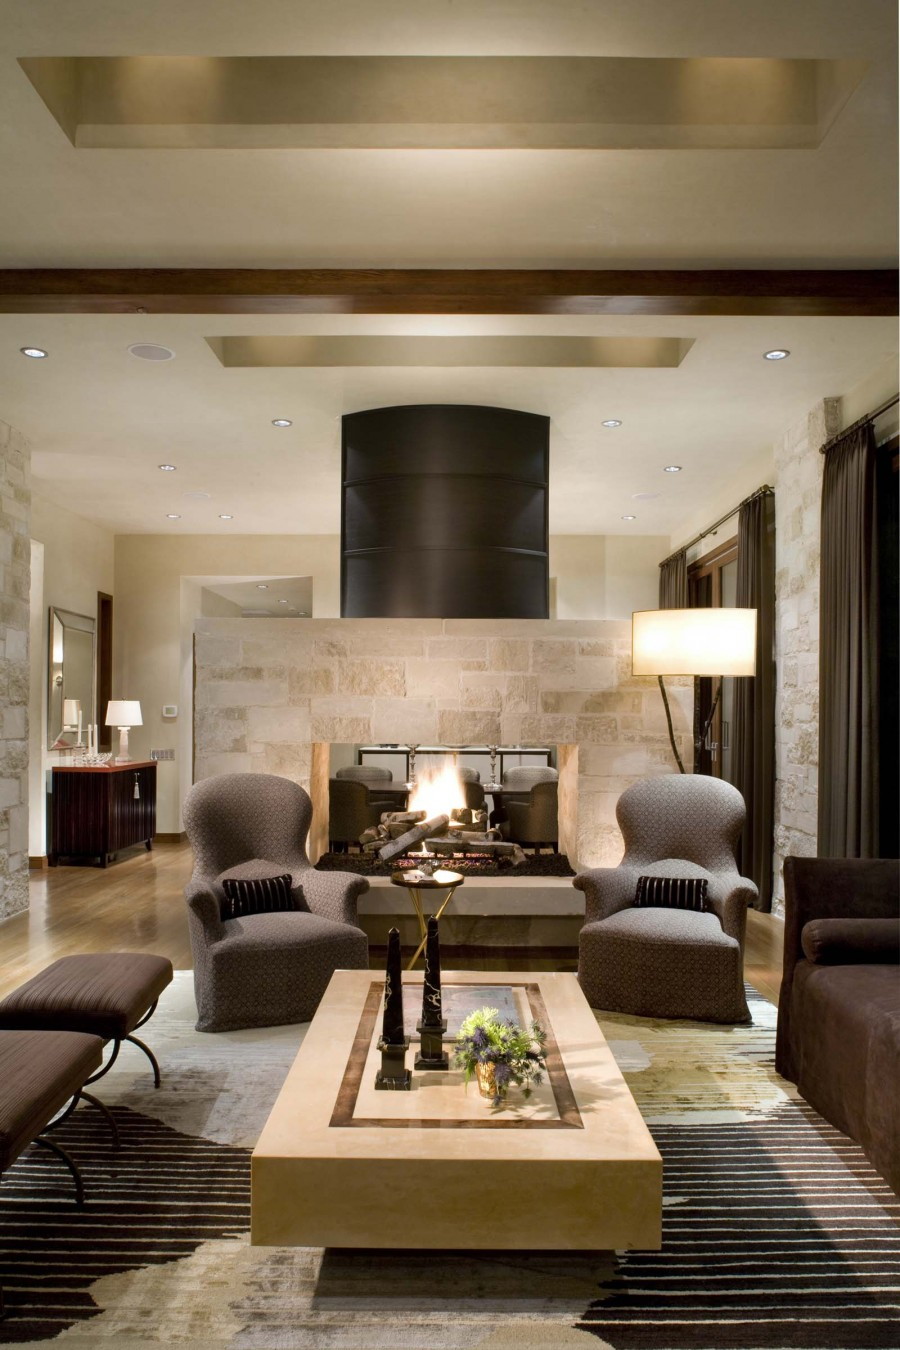 16 fabulous earth tones living room designs decoholic for Home design ideas living room